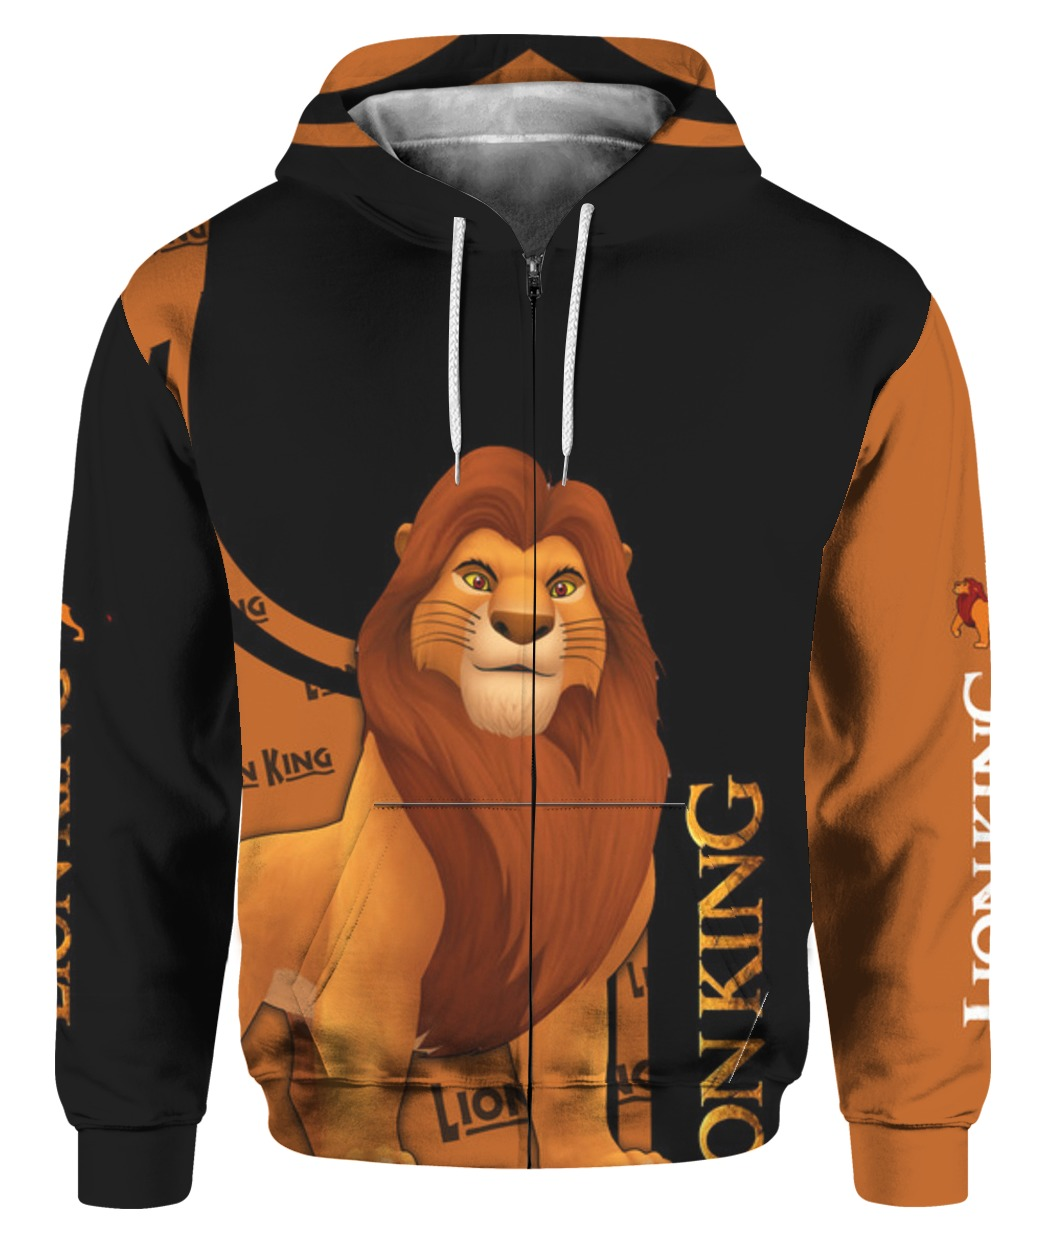 The lion king all over printed zip hoodie 1